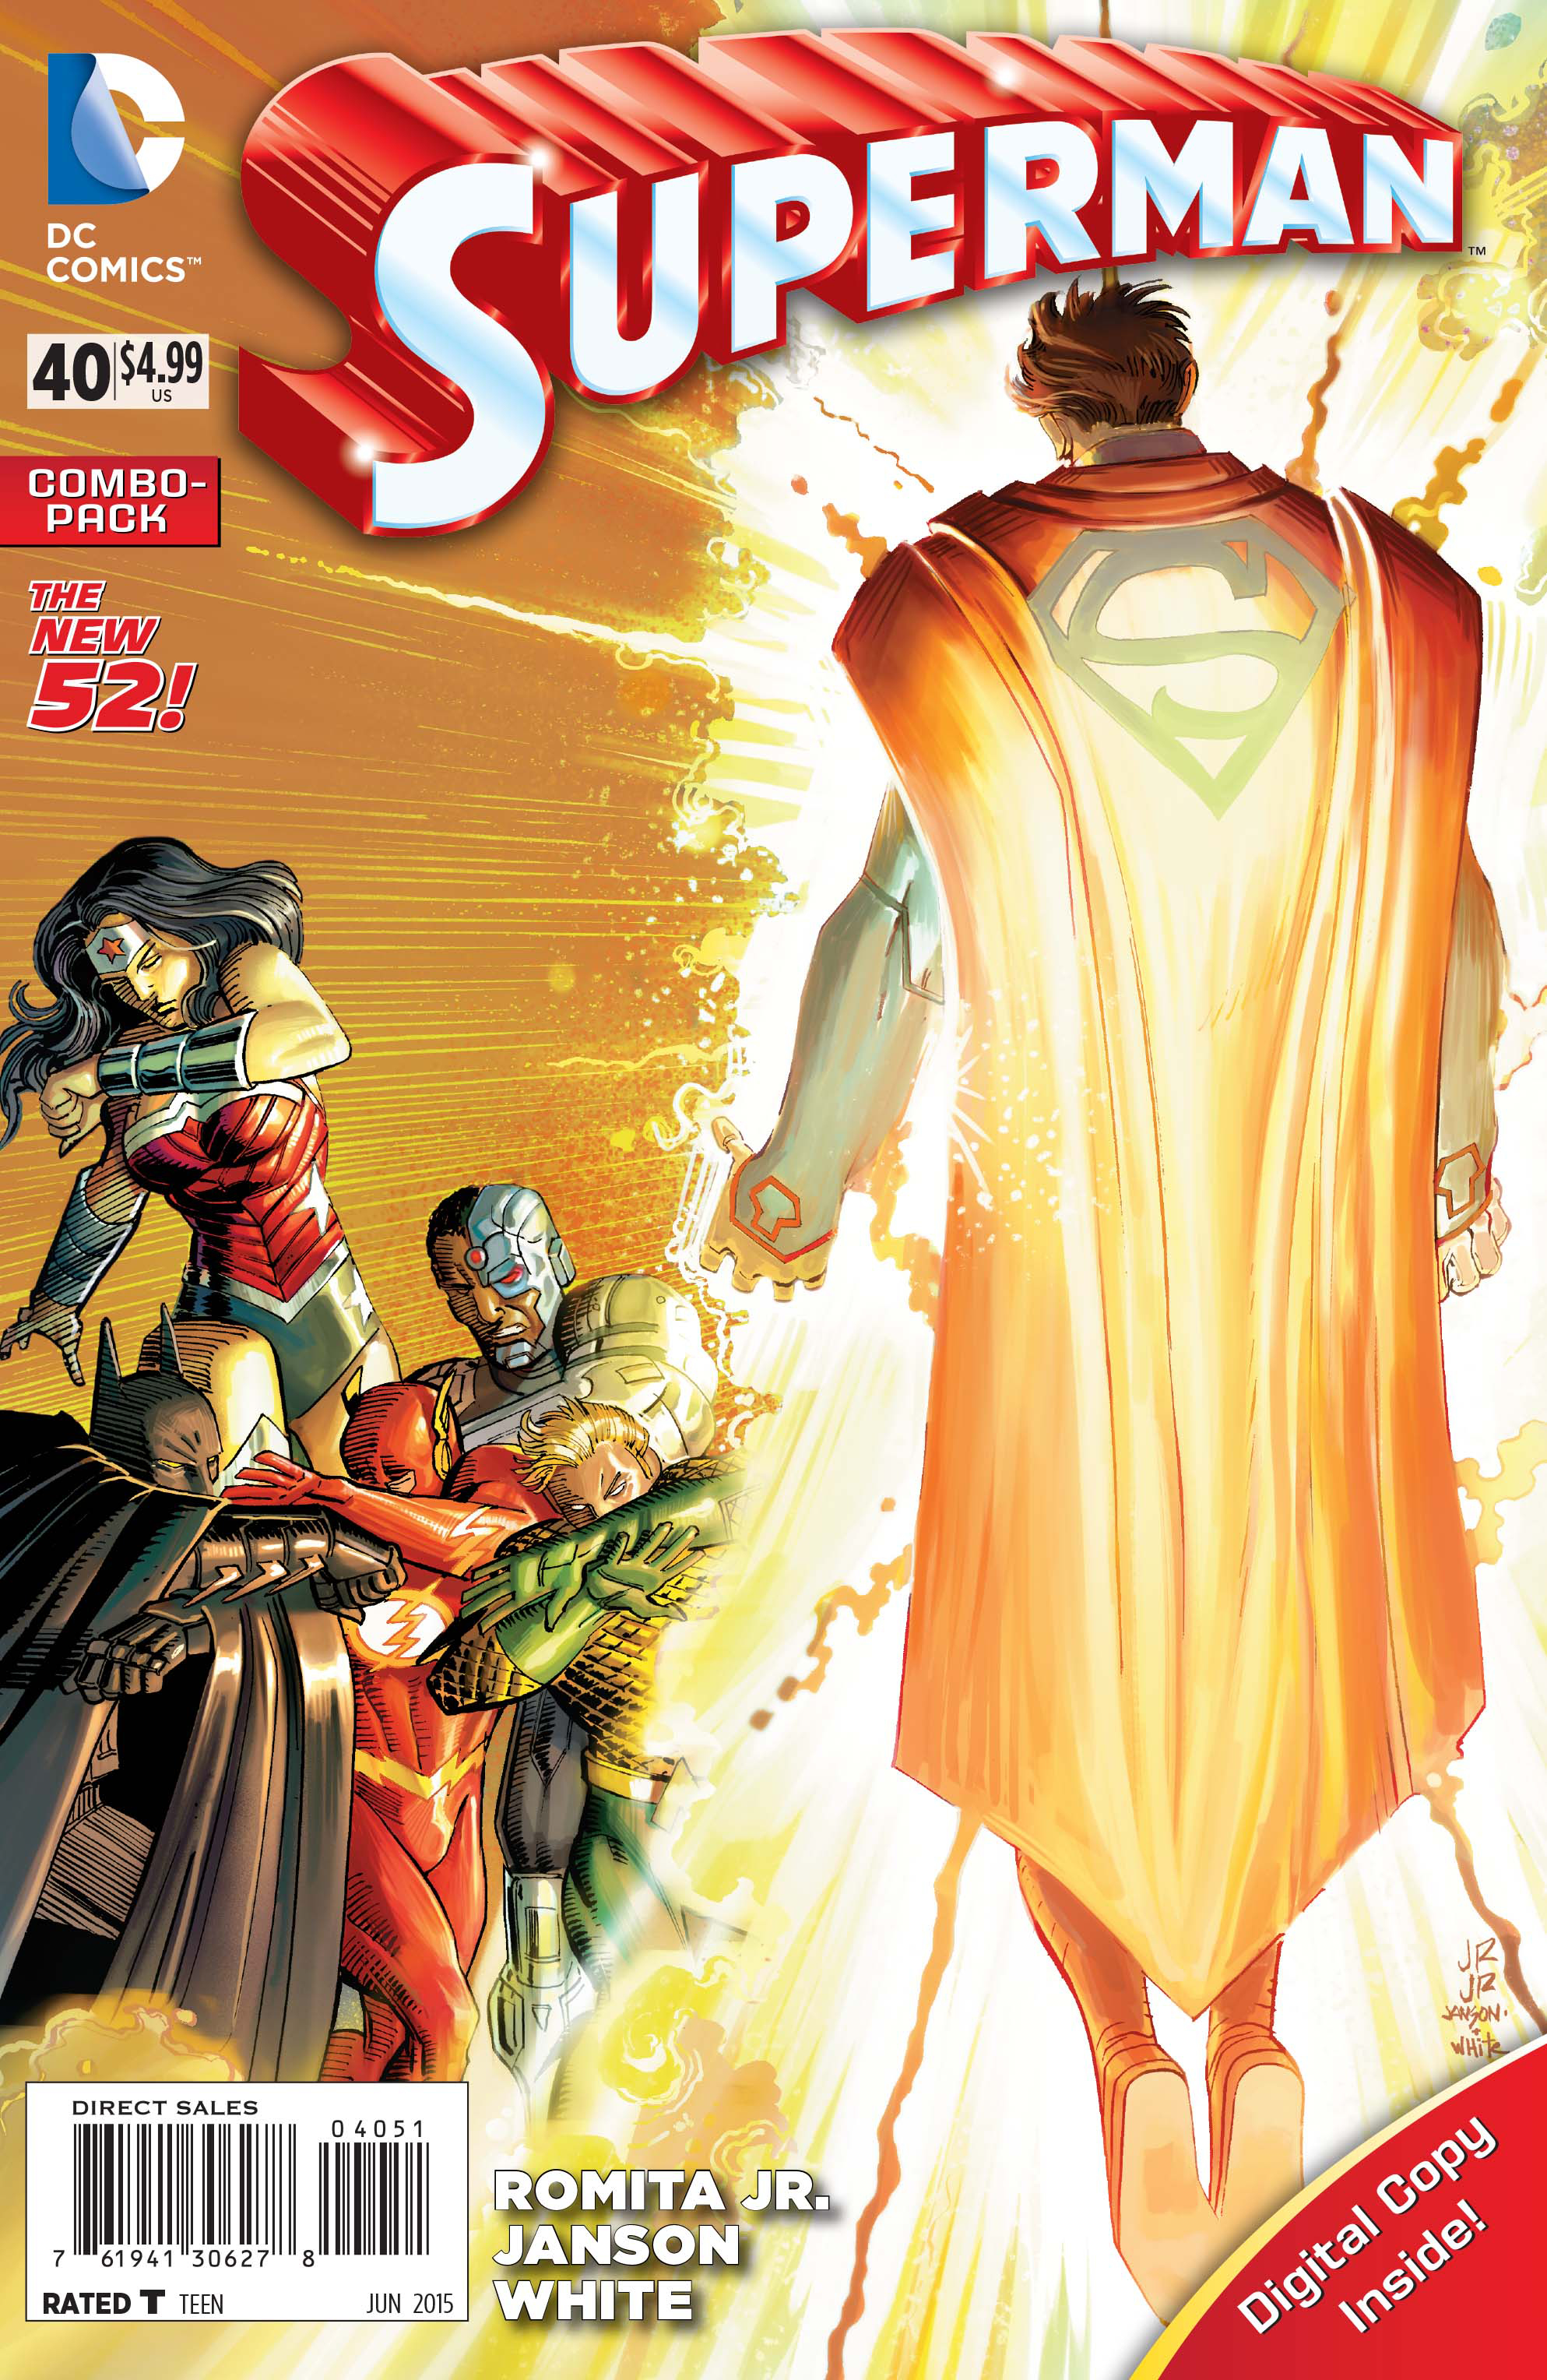 SUPERMAN #40 COMBO PACK